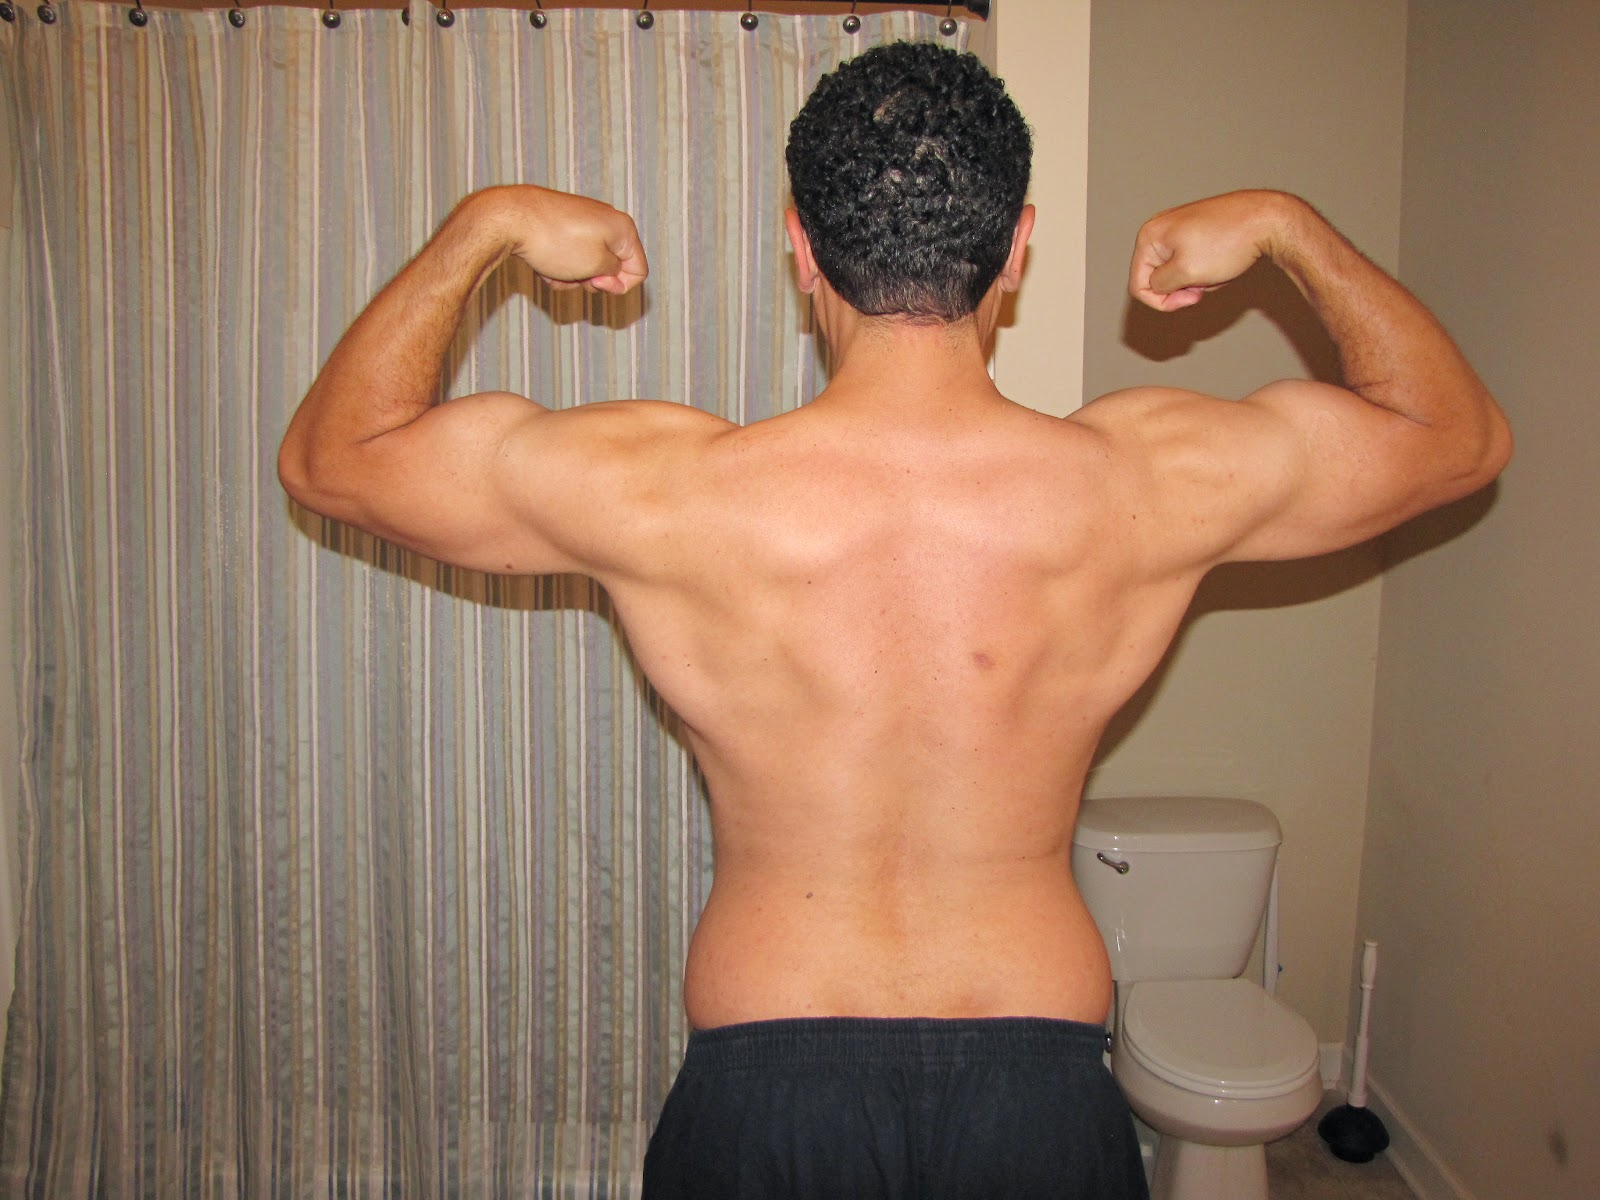 Damond Nollan flexing back muscles.